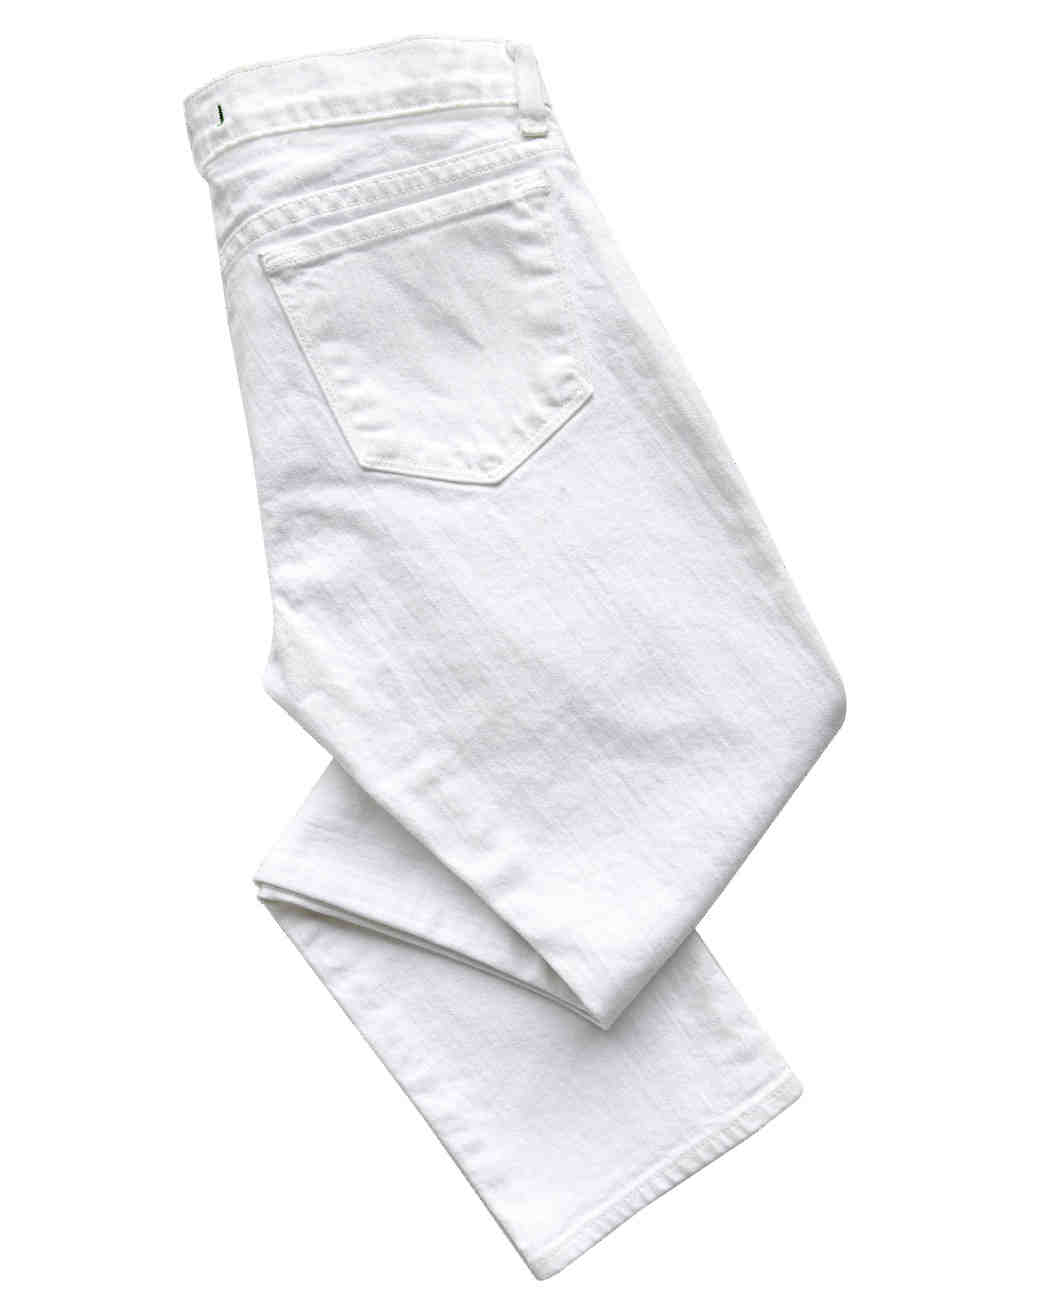 travel-accessories-white-pants-mwd107619.jpg